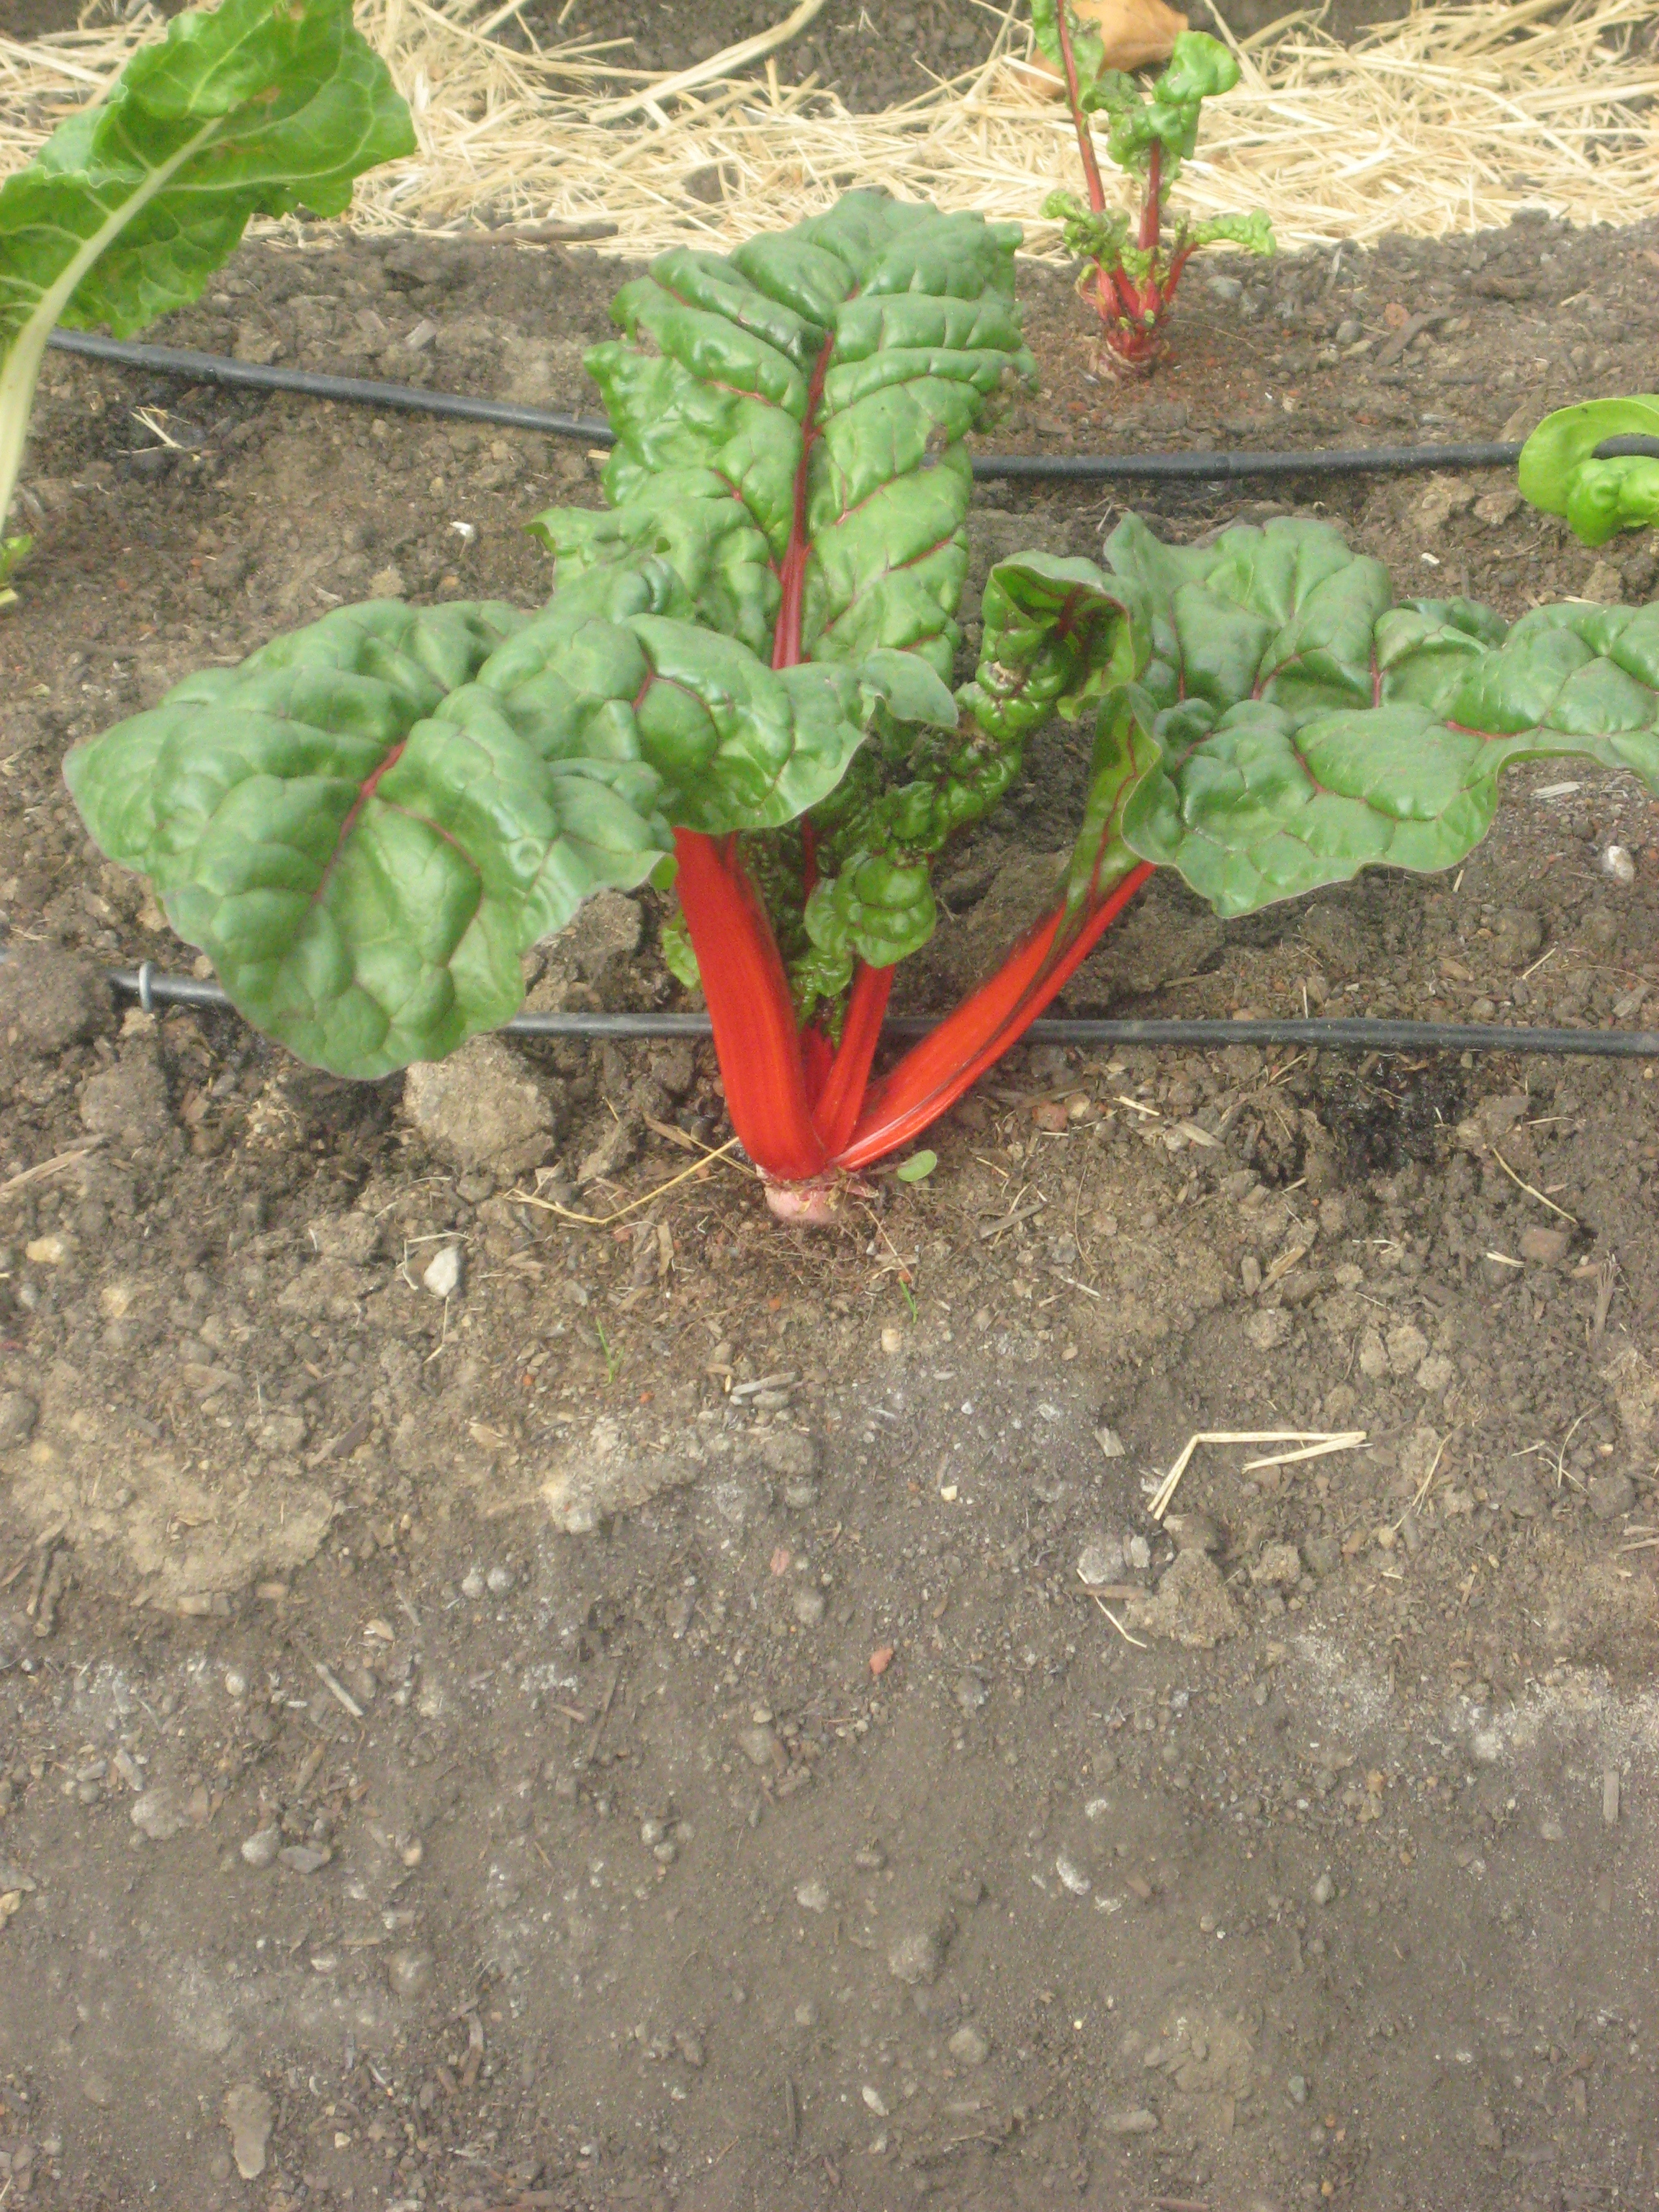 The vibrant stems of red chard remind me of Christmas.